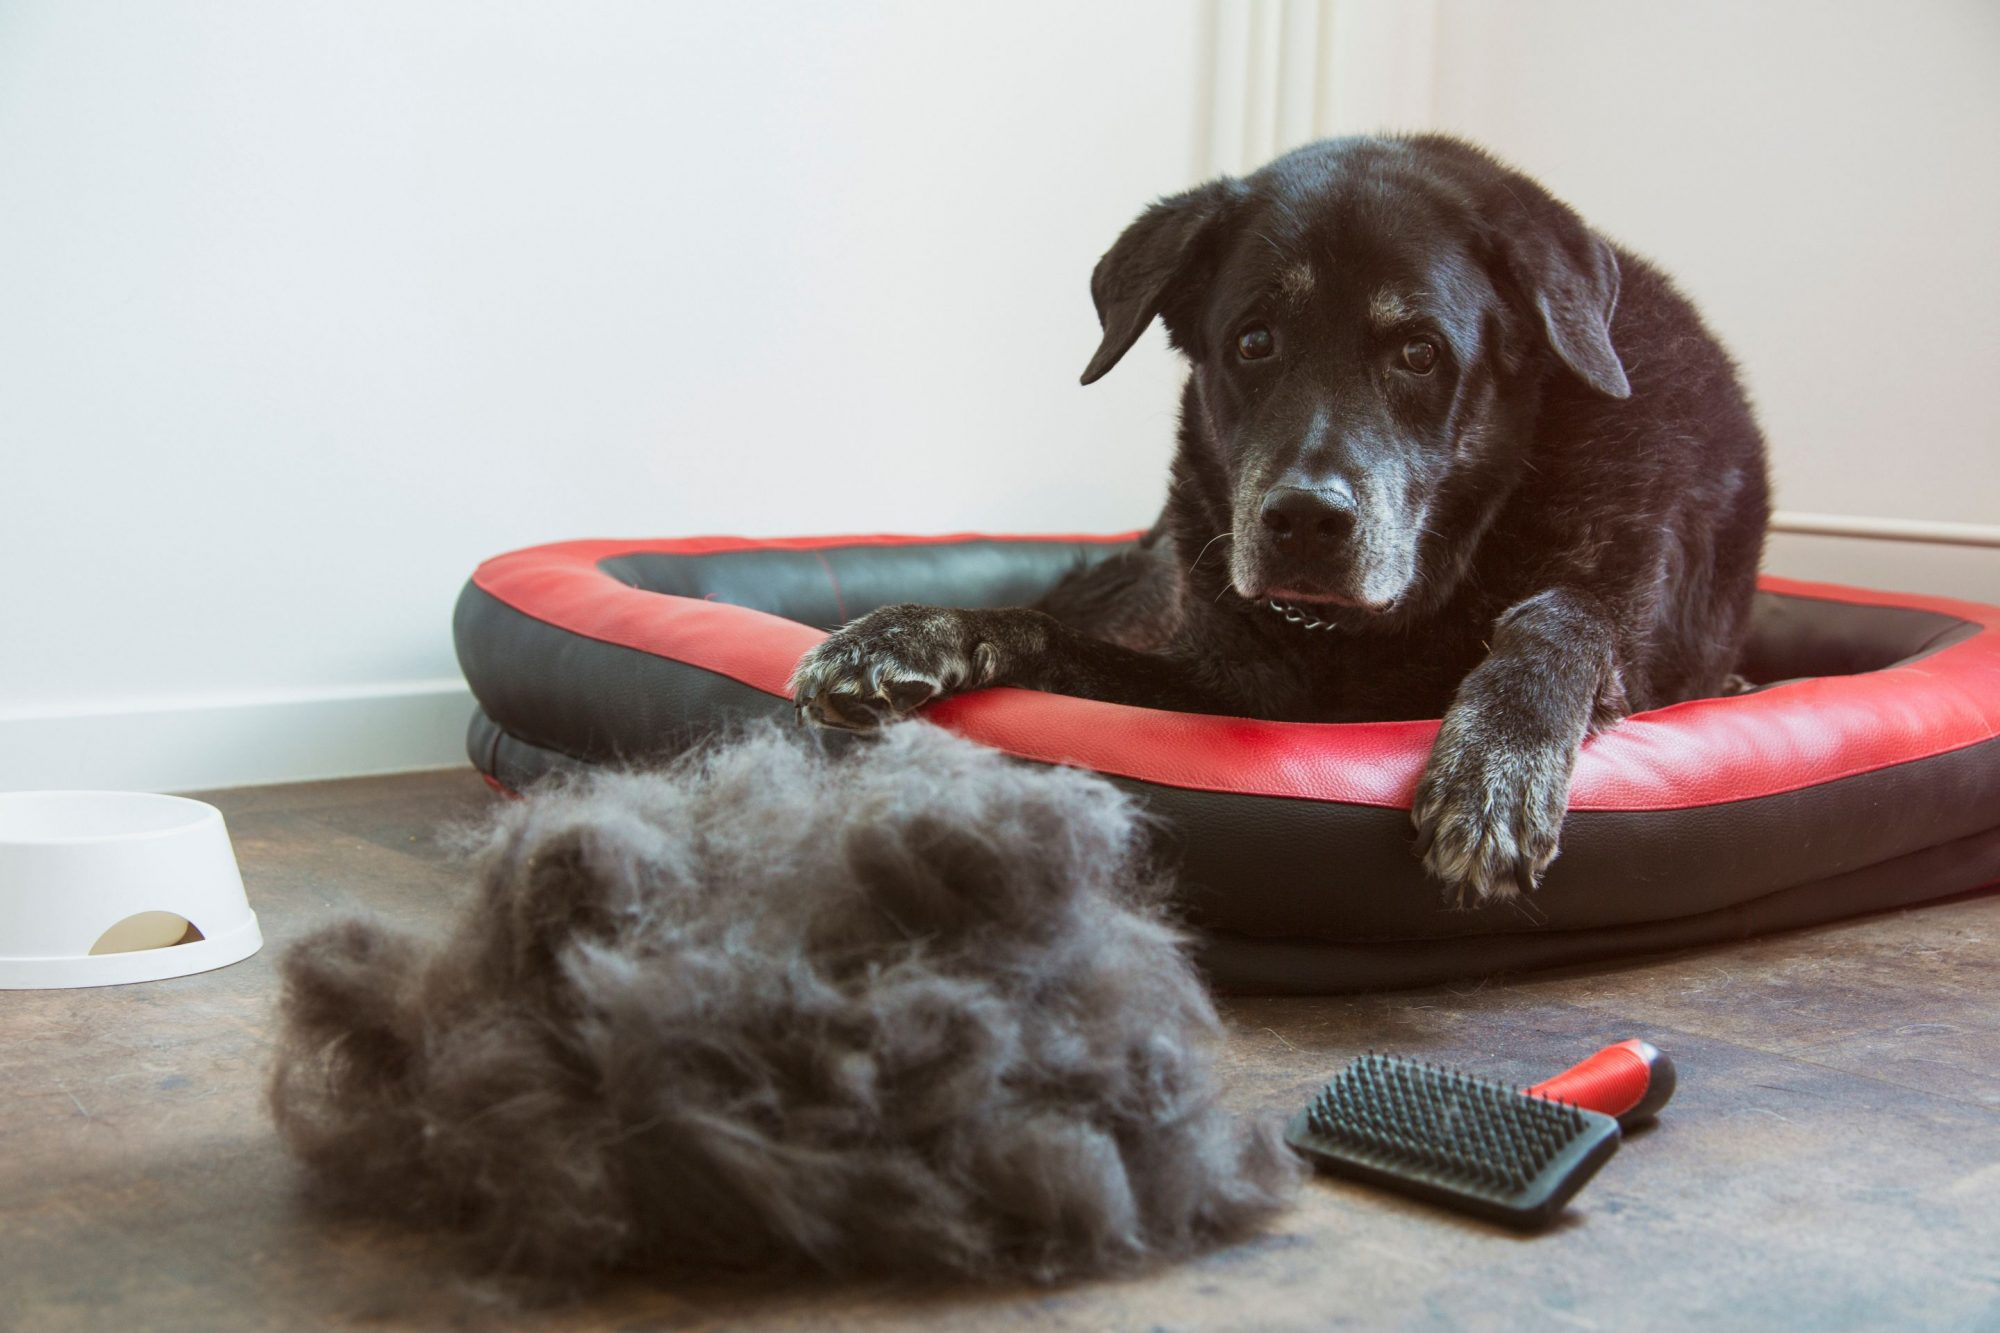 A dog looks at a pile of his hair that has been brushed out.